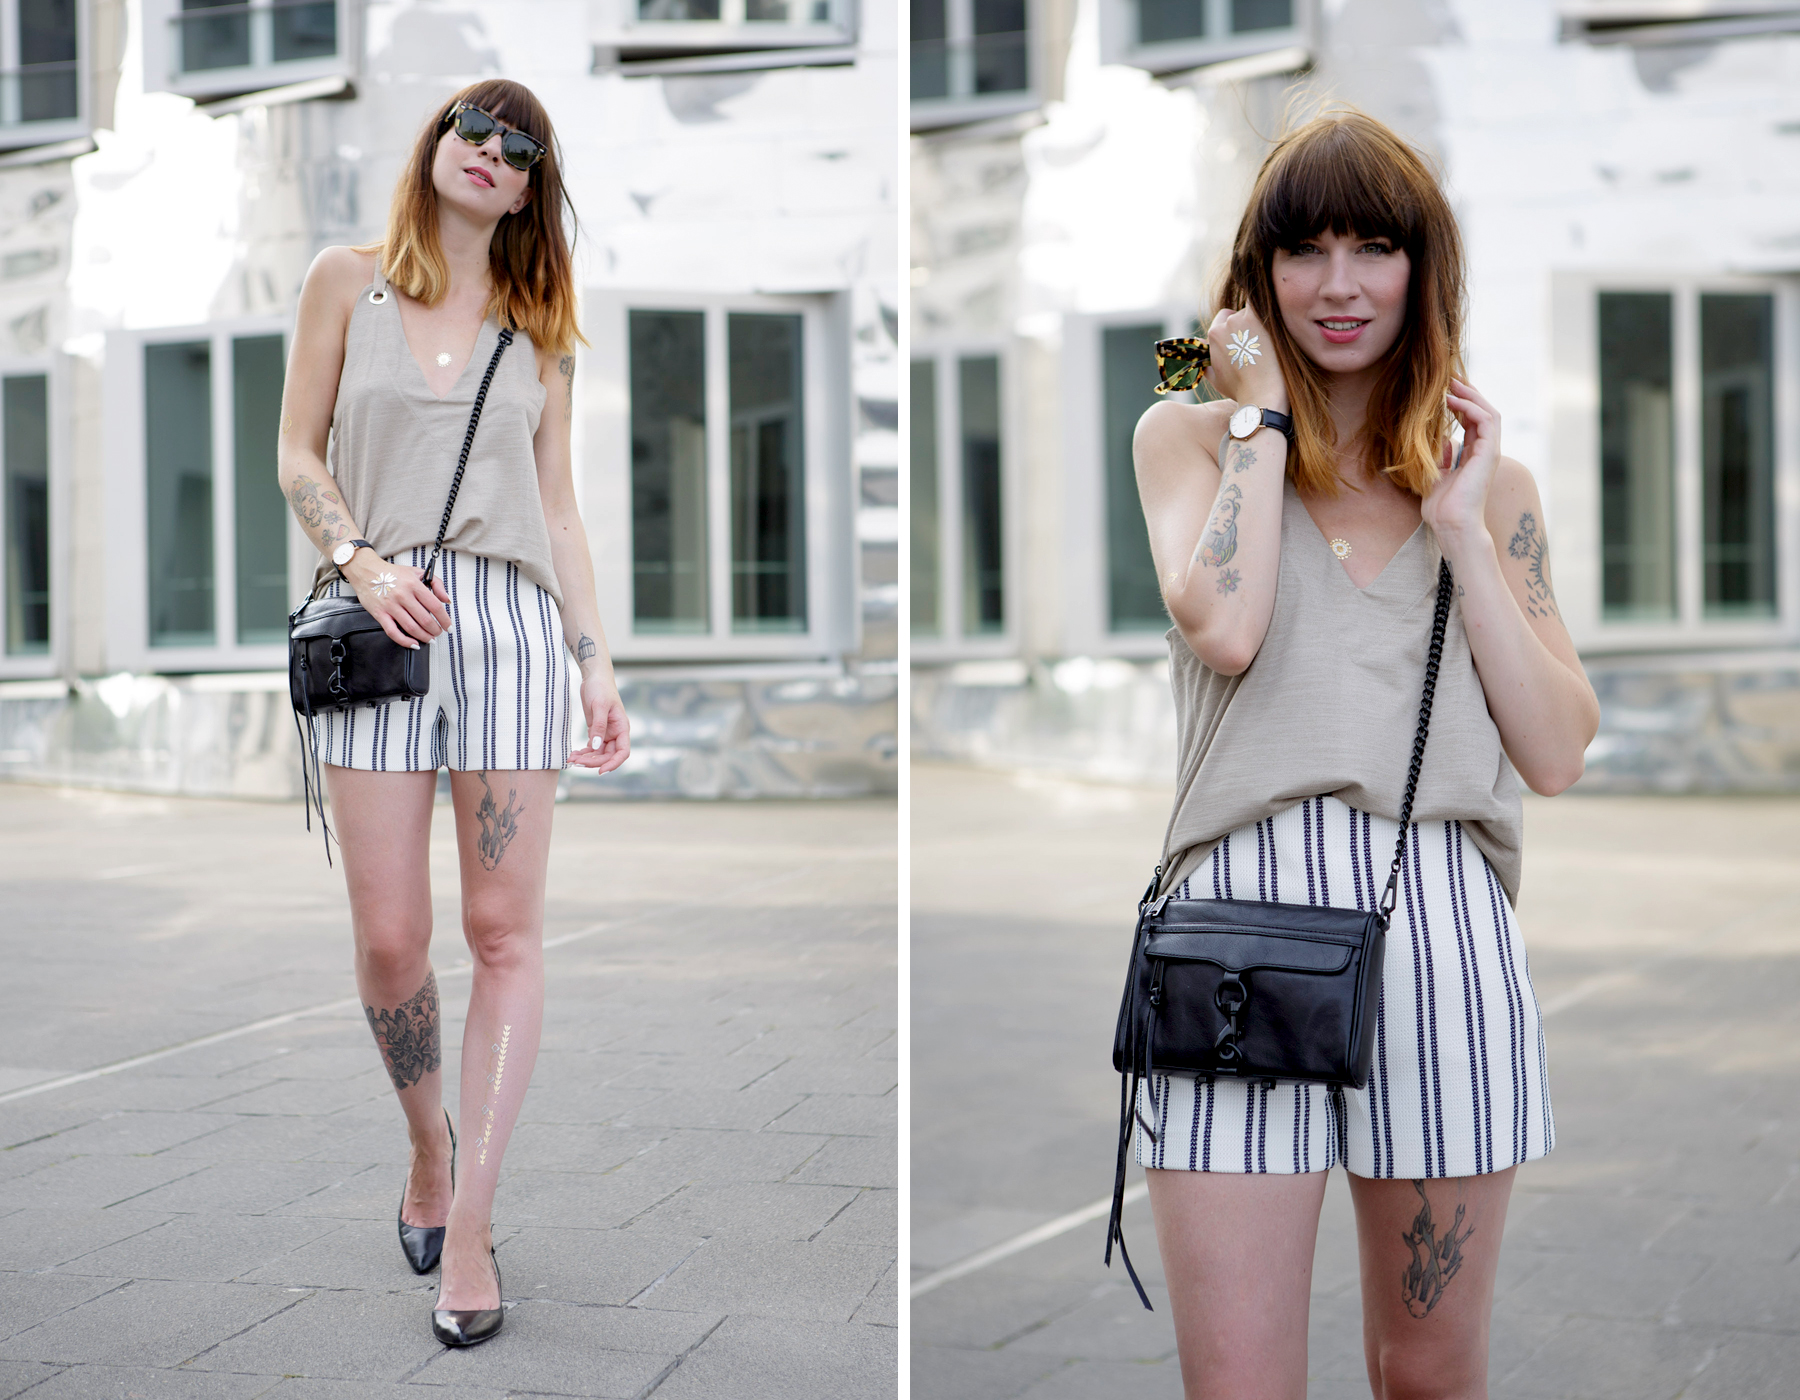 stiped shorts nude summer outfit styling düsseldorf blogger german girl rebecca minkoff shopbop ricarda schernus cats & dogs 6